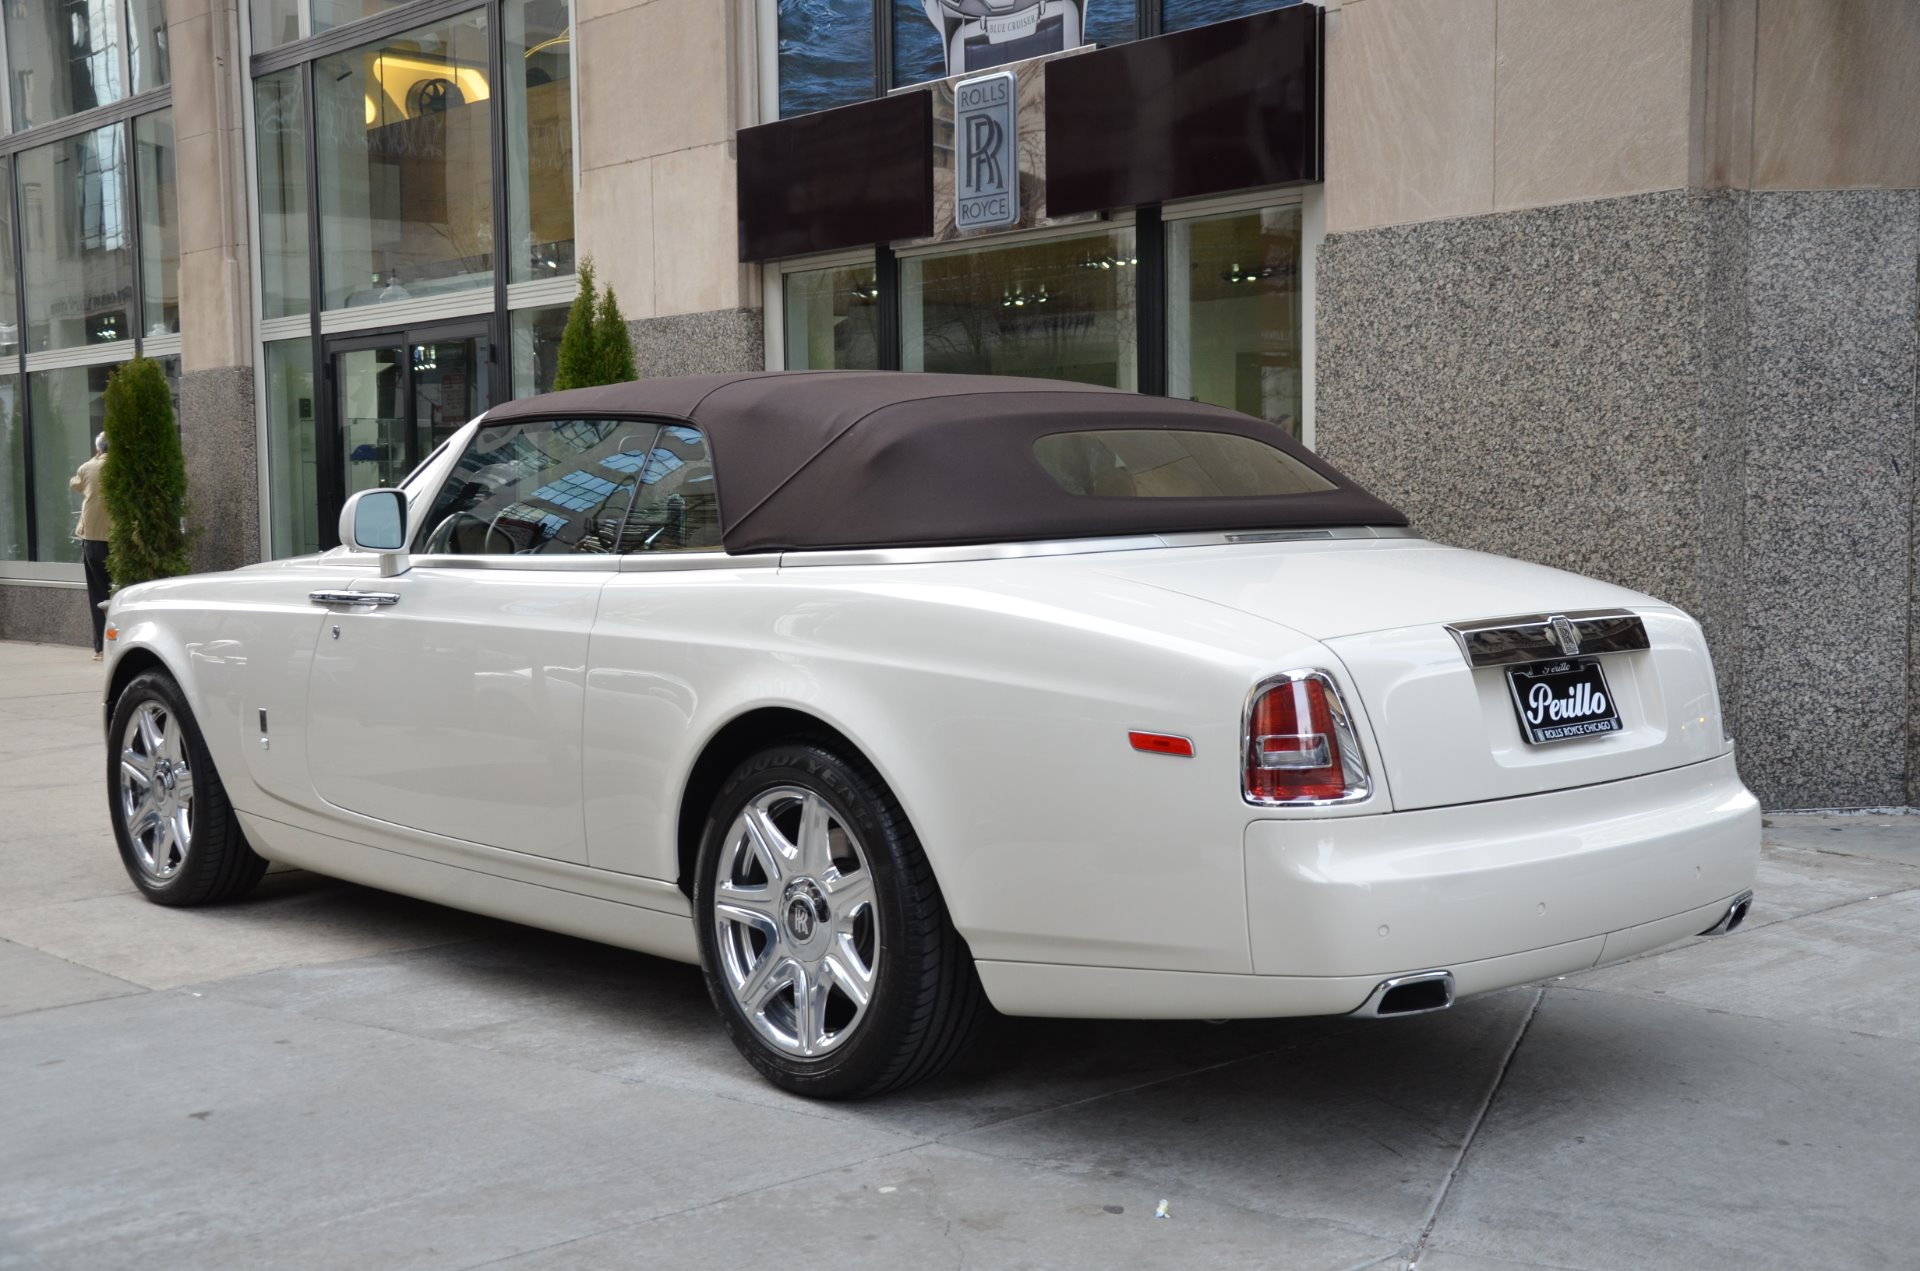 gt sale royce bentley based costs news continental phantom for allegedly eur on rolls